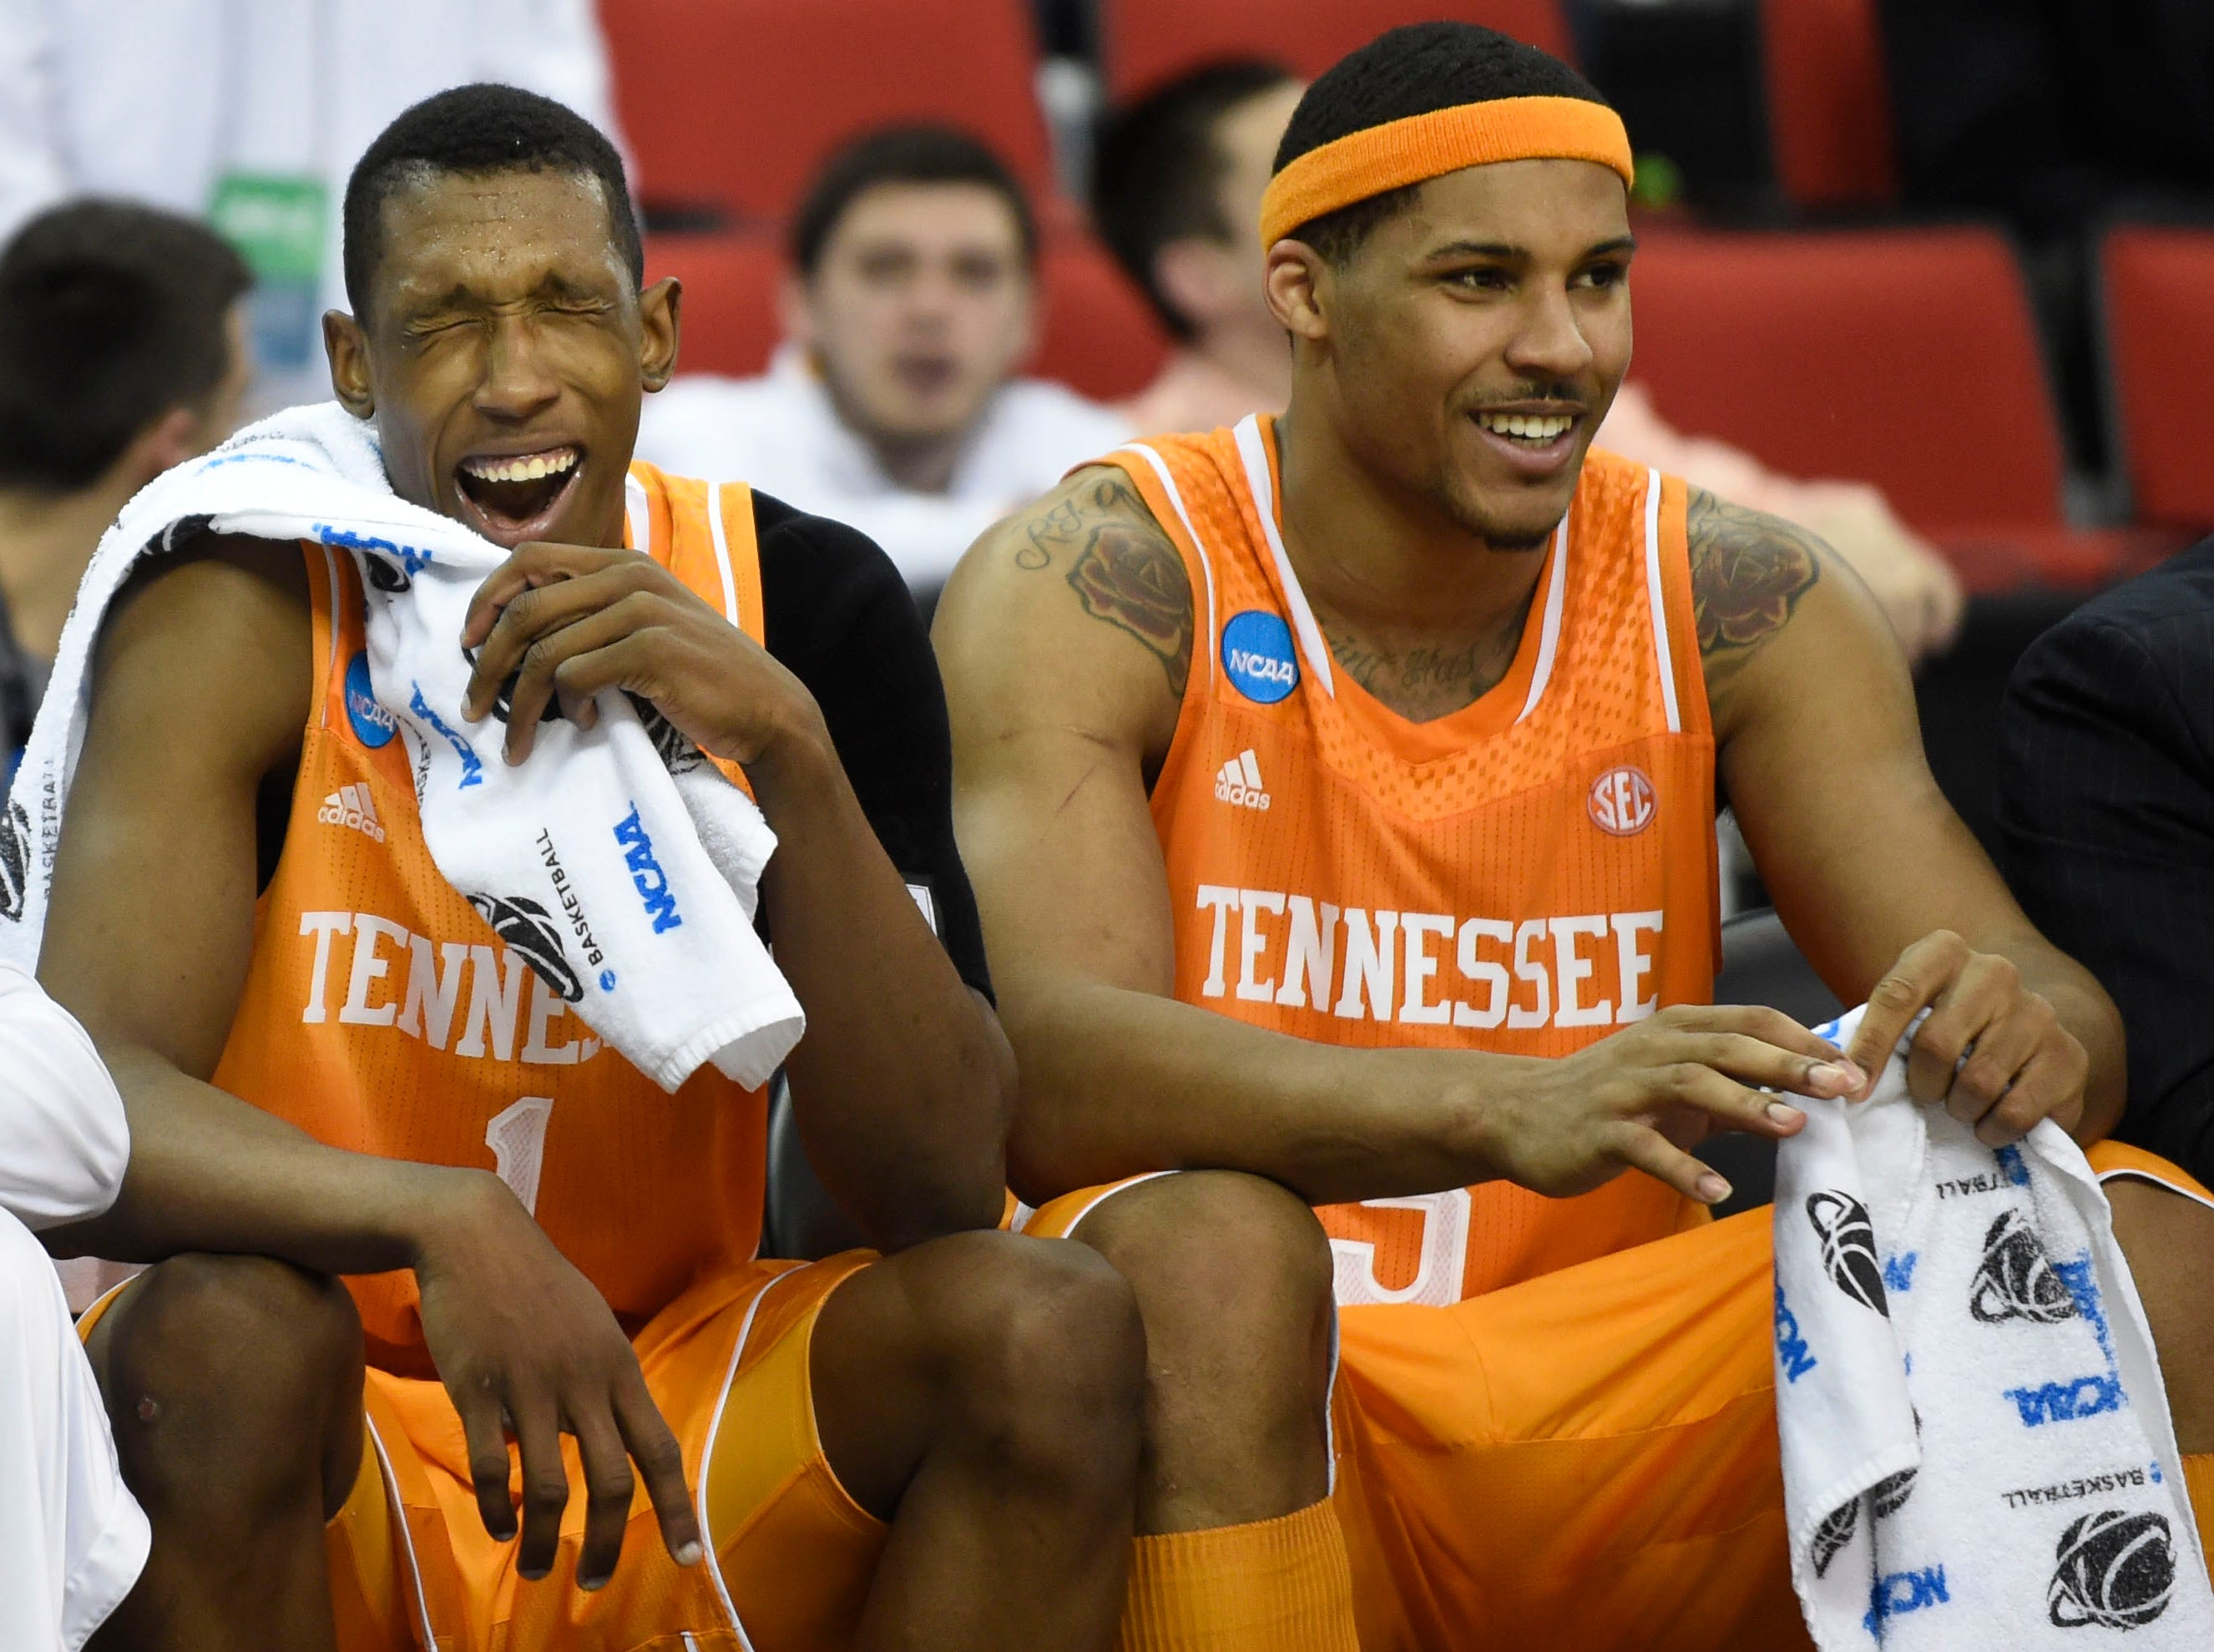 Tennessee guard Josh Richardson (1) and Tennessee forward Jarnell Stokes (5), from left, relax on the sideline during Tennessee's 86-67 victory over Massachusetts during the second half of an NCAA tournament game at the PNC Arena in Raleigh, N.C. on Friday, March 21, 2014.